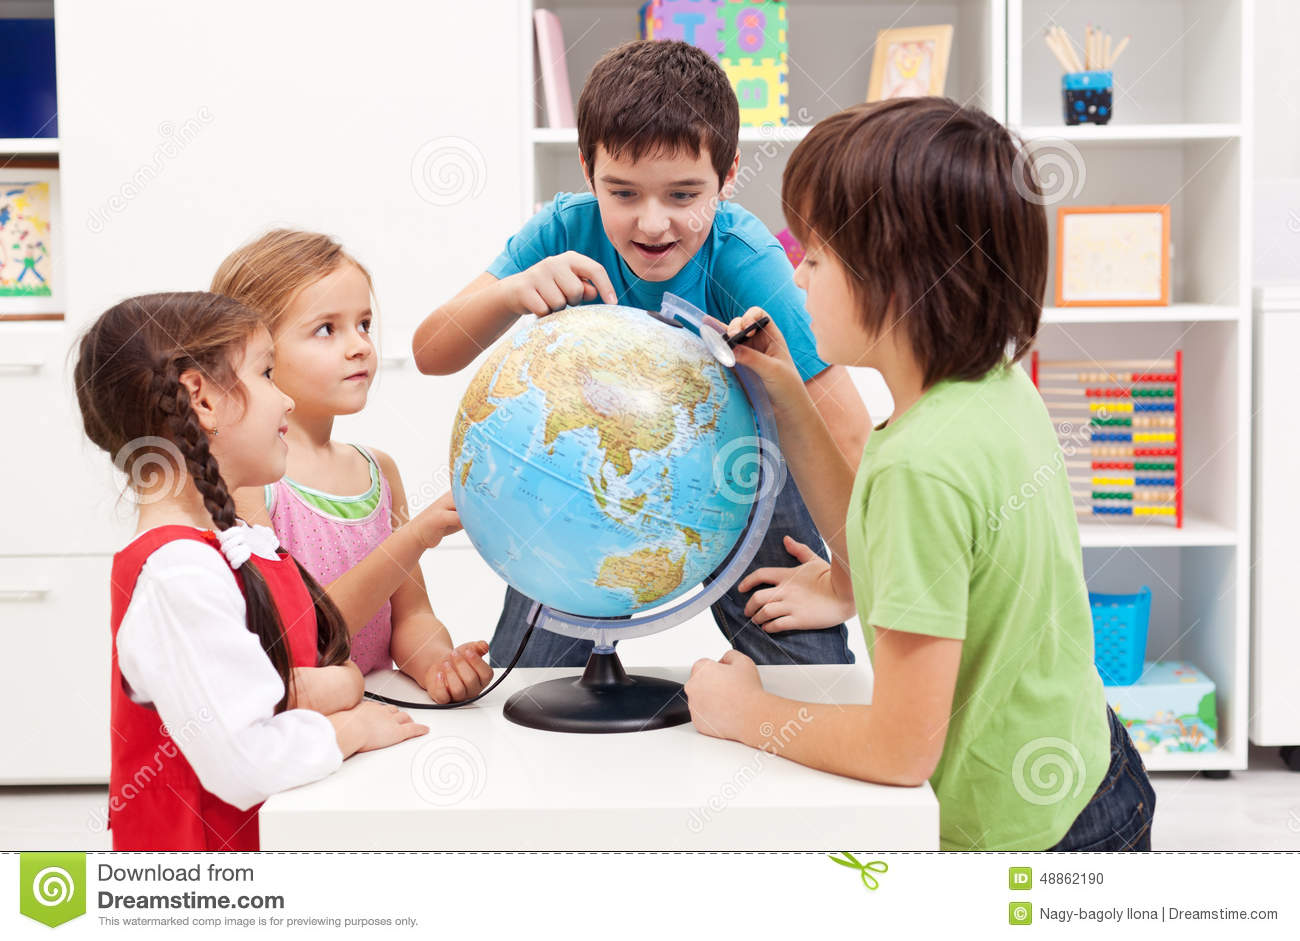 kids working on a science project stock photo image clipart earth's creation clipart earthworm